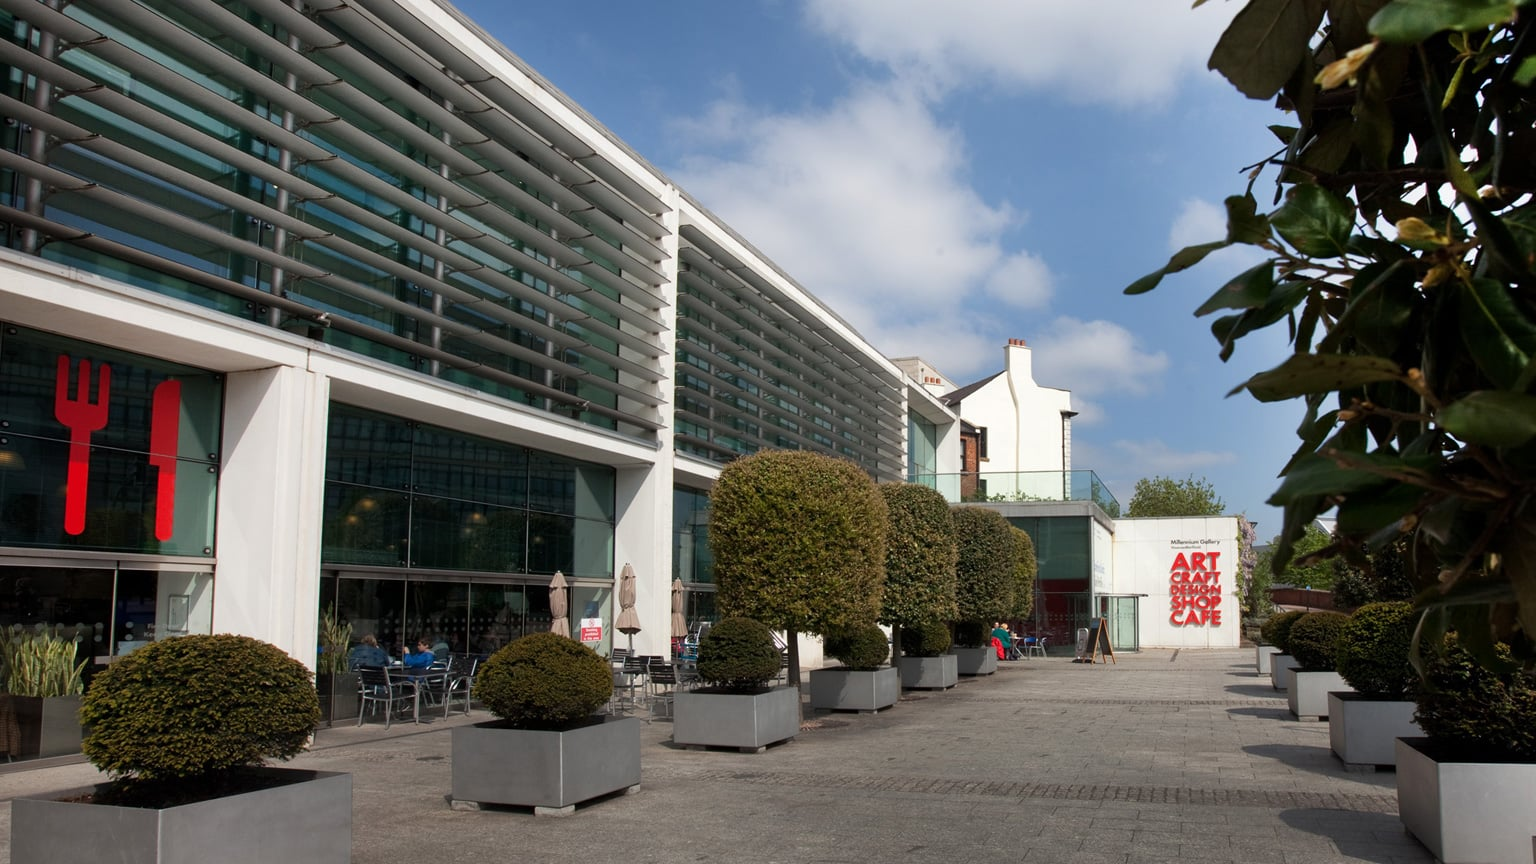 Museums Sheffield: Millenium Gallery. Free to all, 10% off shop purchases with National Art Pass -